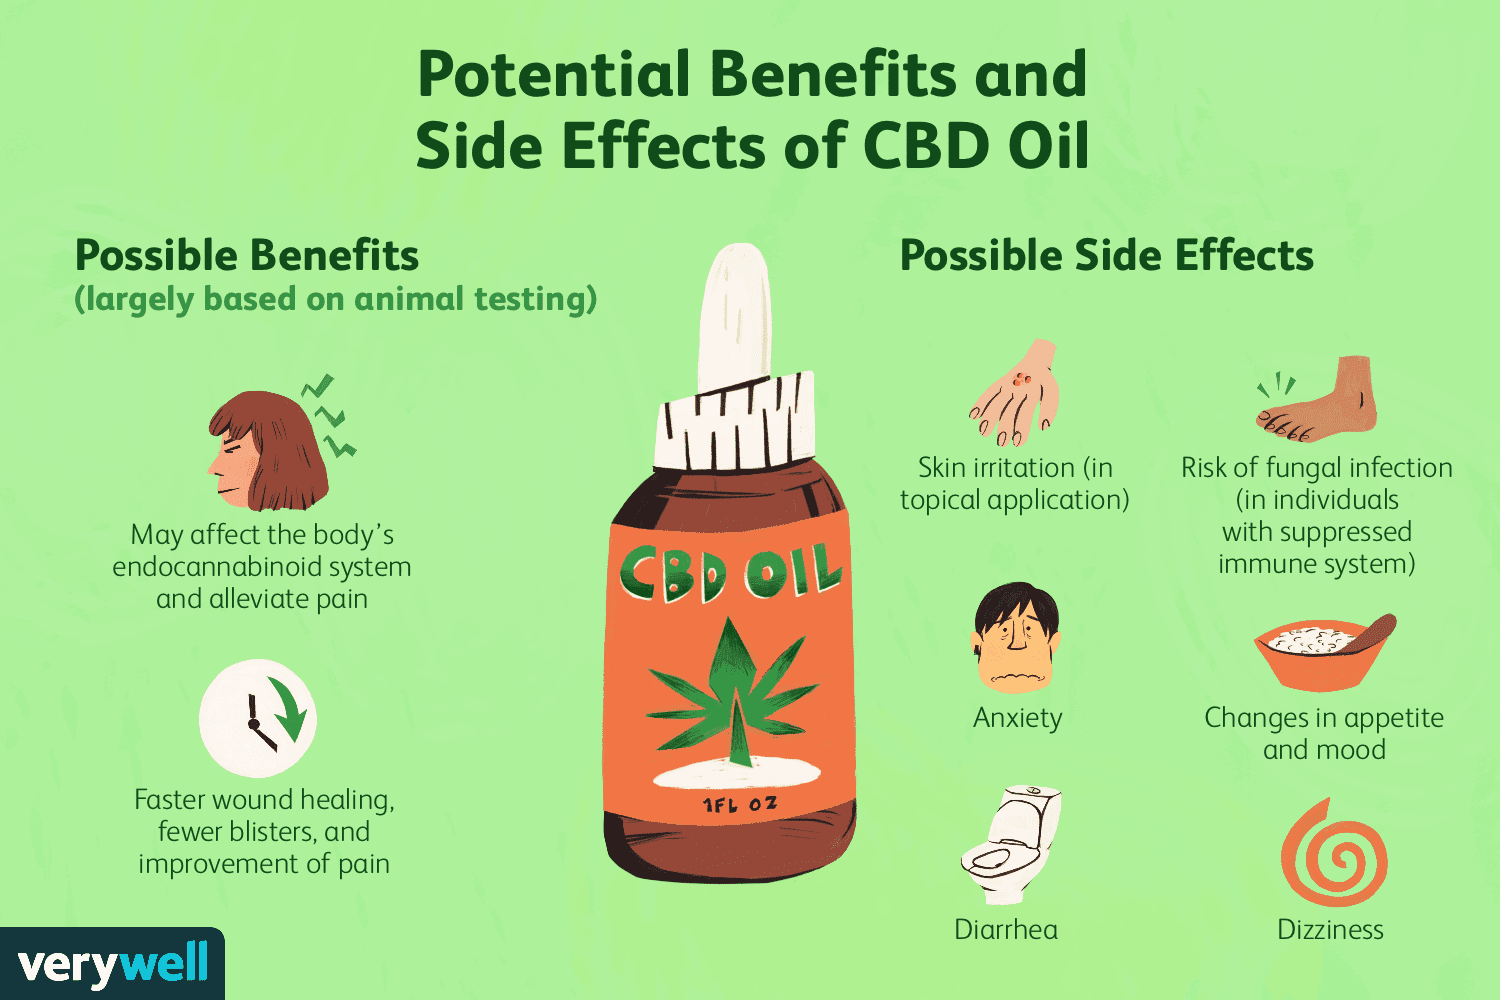 Potential Benefits and Side Effects of CBD Oil